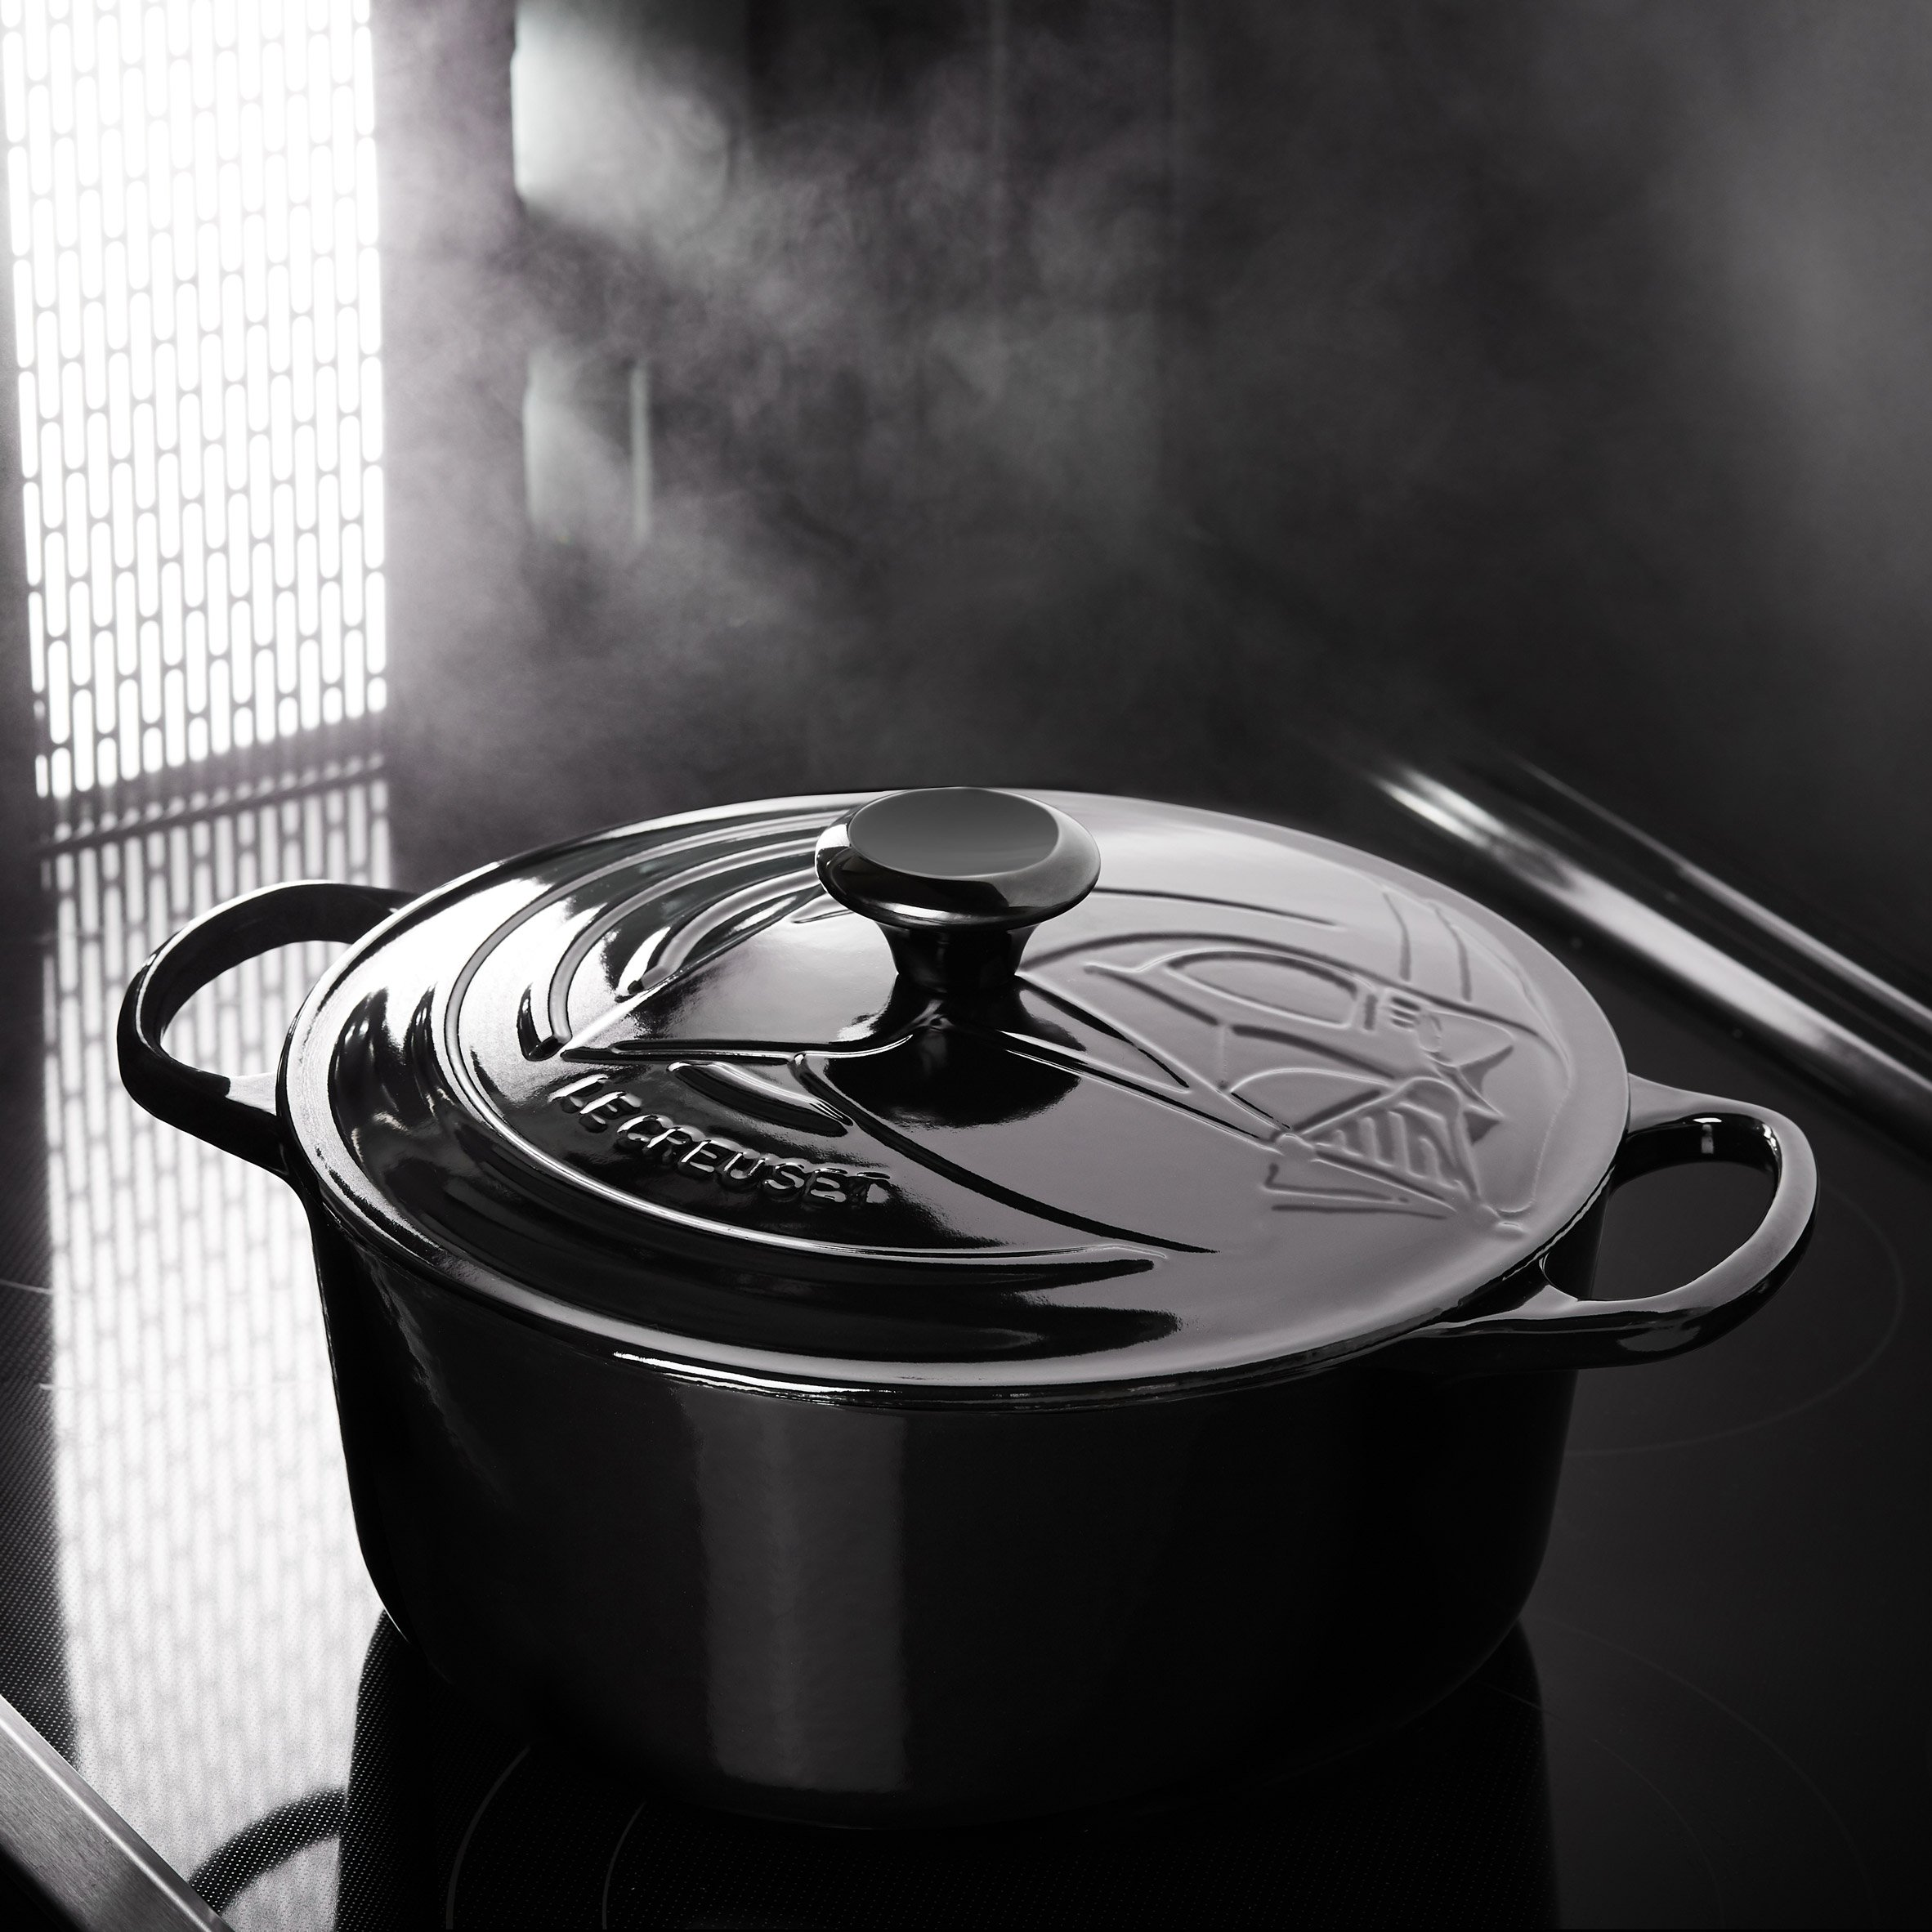 Star Wars Le Creuset Cookware Includes Darth Vader Dutch Oven